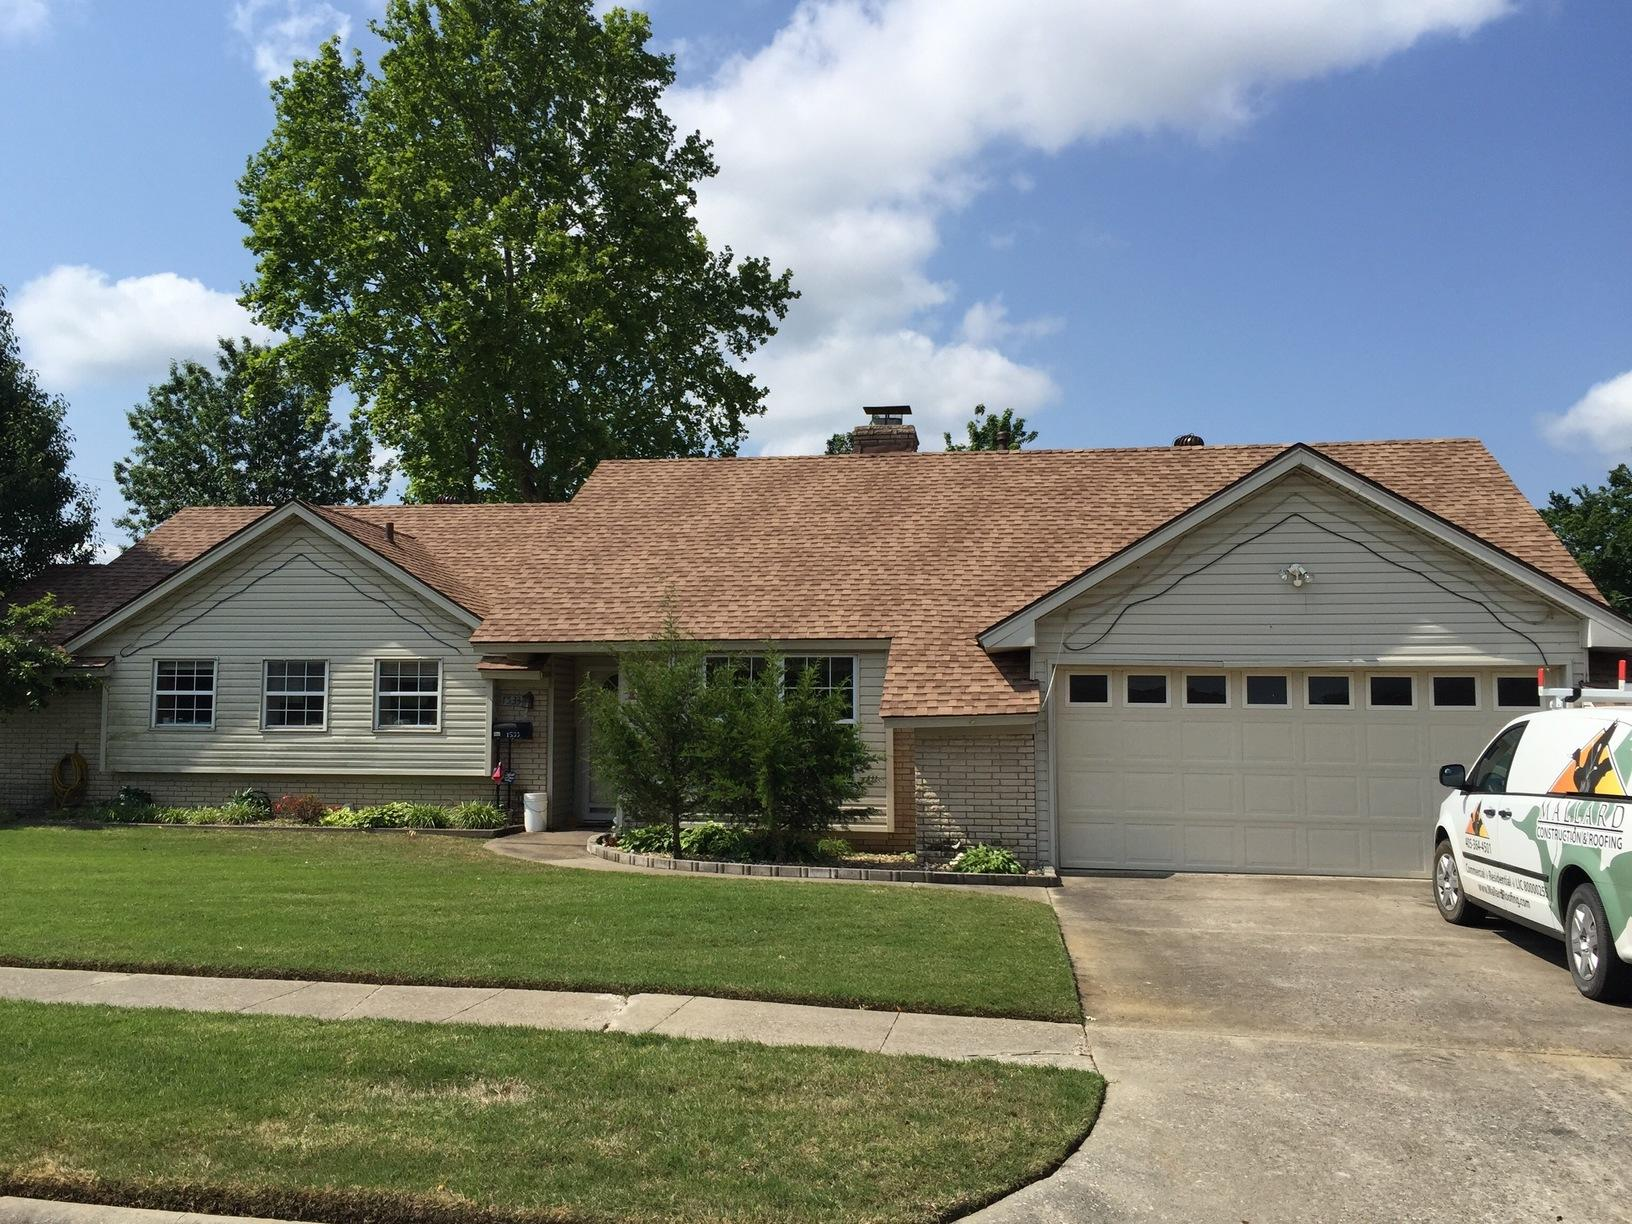 Roof Replacement in McAlester - After Photo